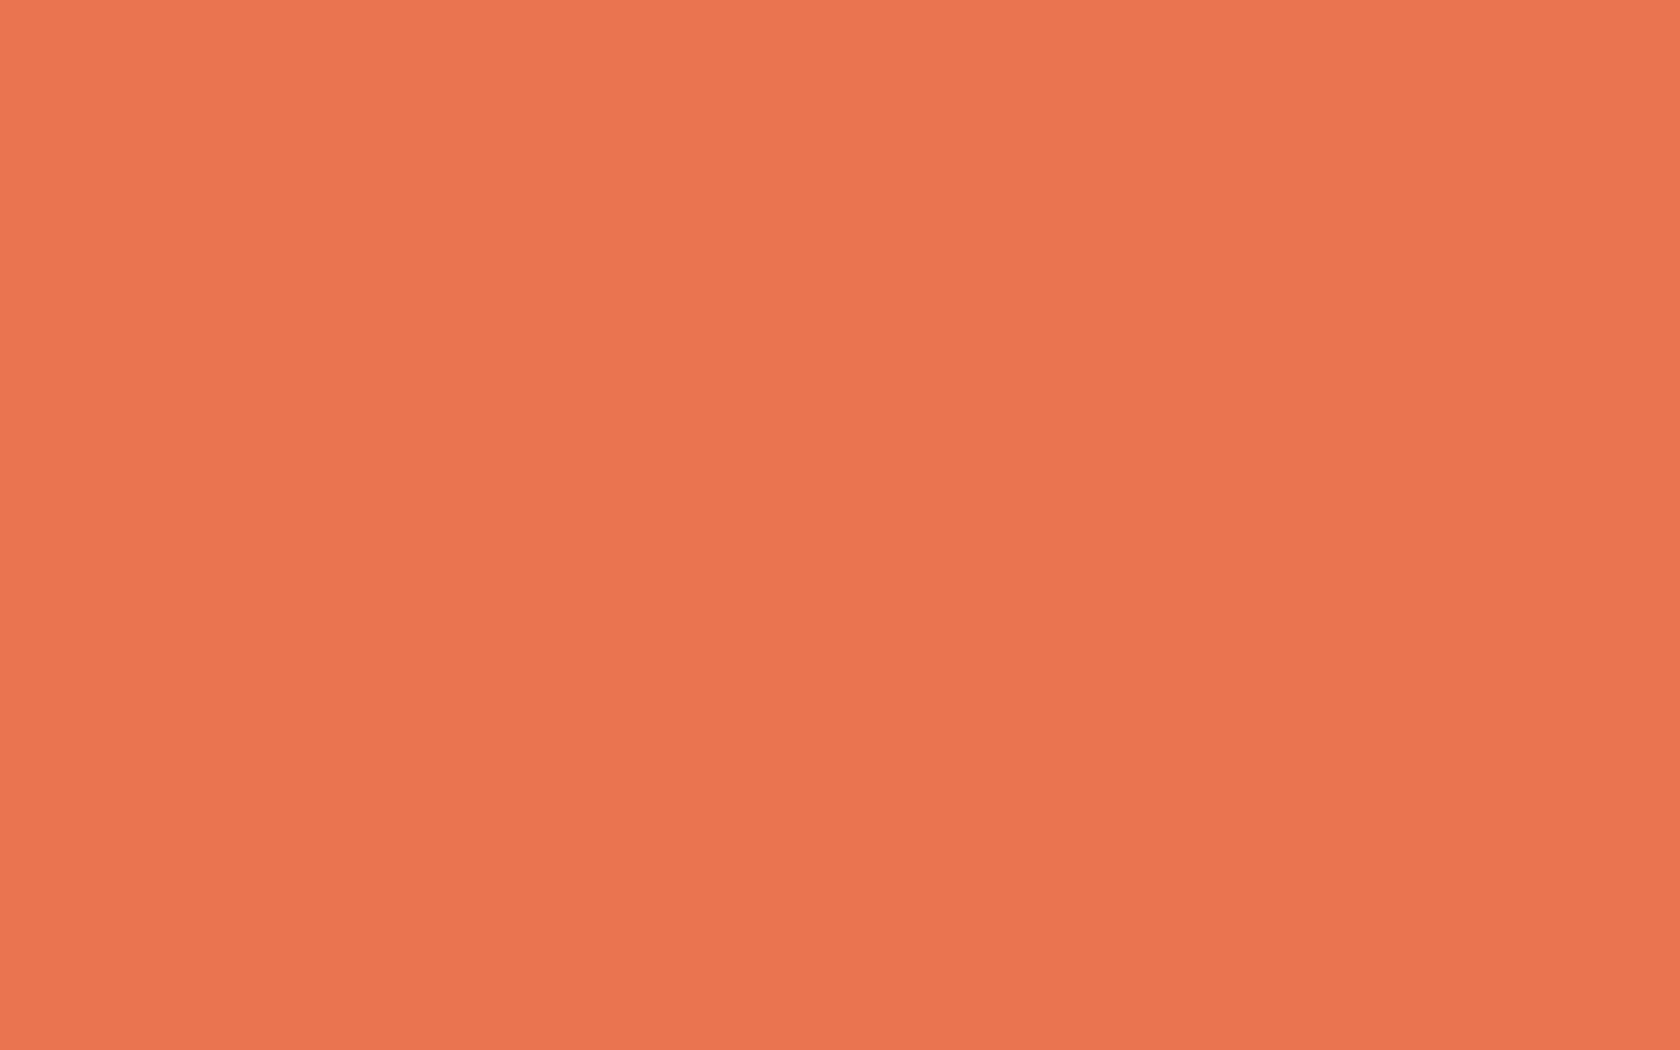 1680x1050 Burnt Sienna Solid Color Background